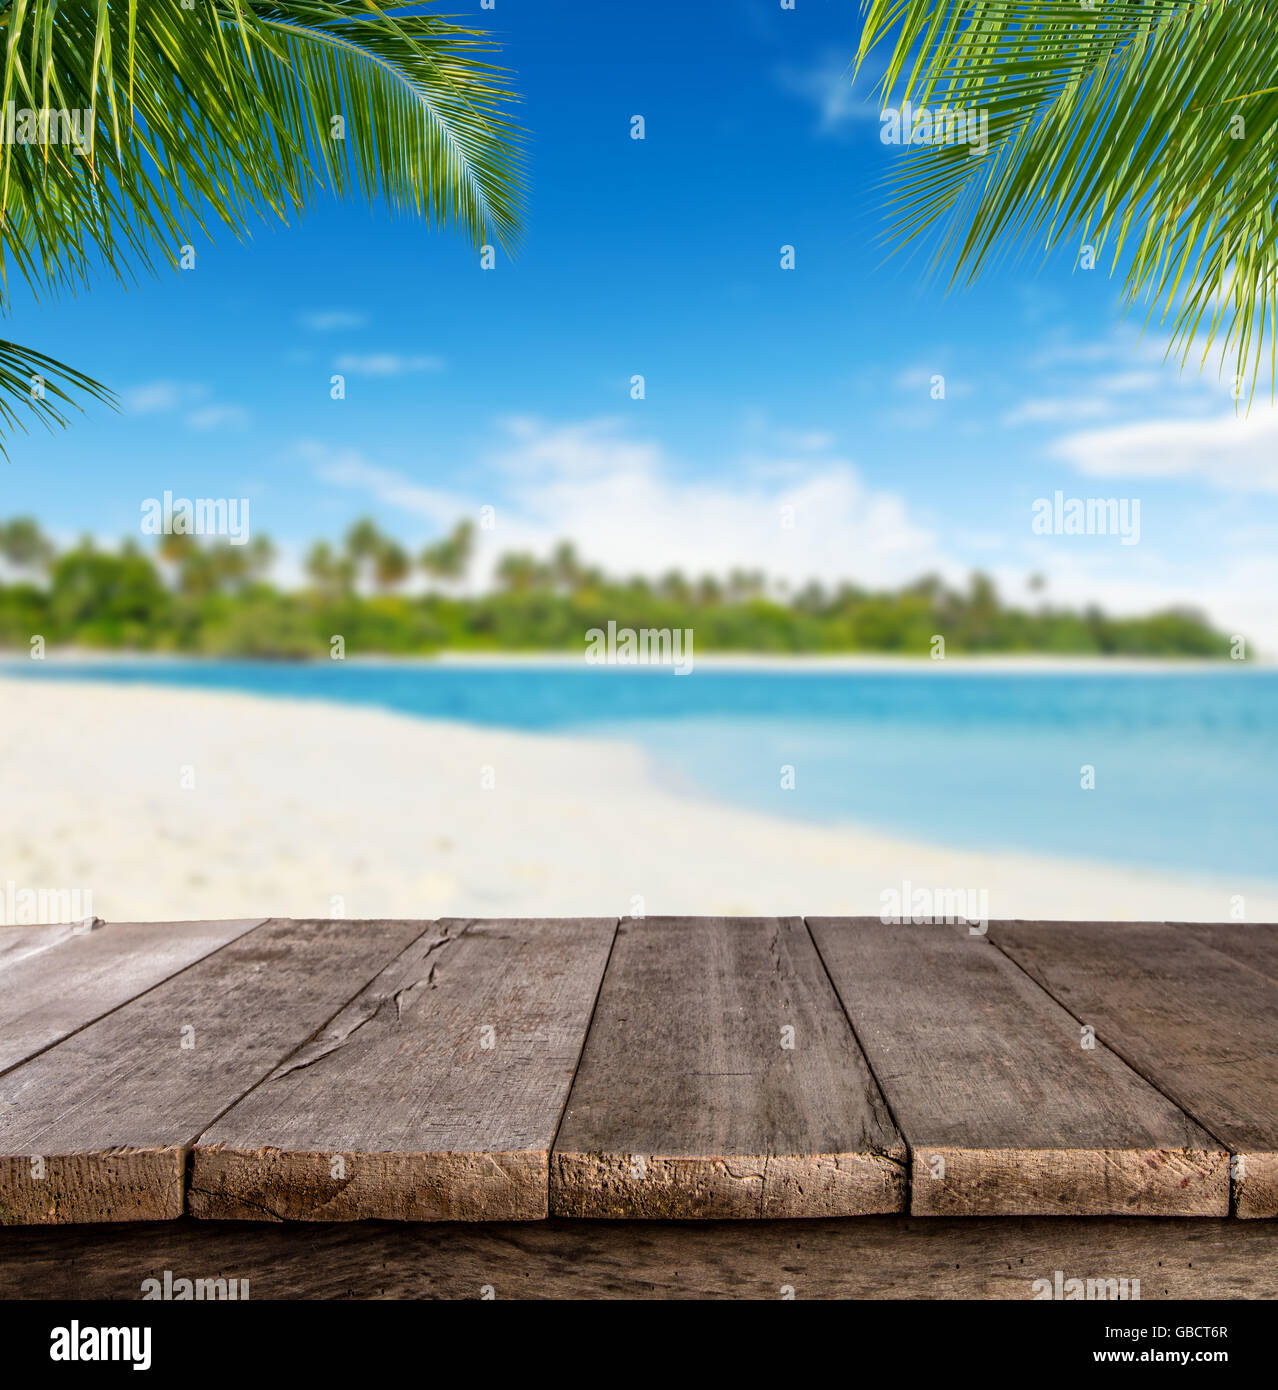 Empty wooden planks with blur beach on background, can be used for product placement, palm leaves on foreground - Stock Image